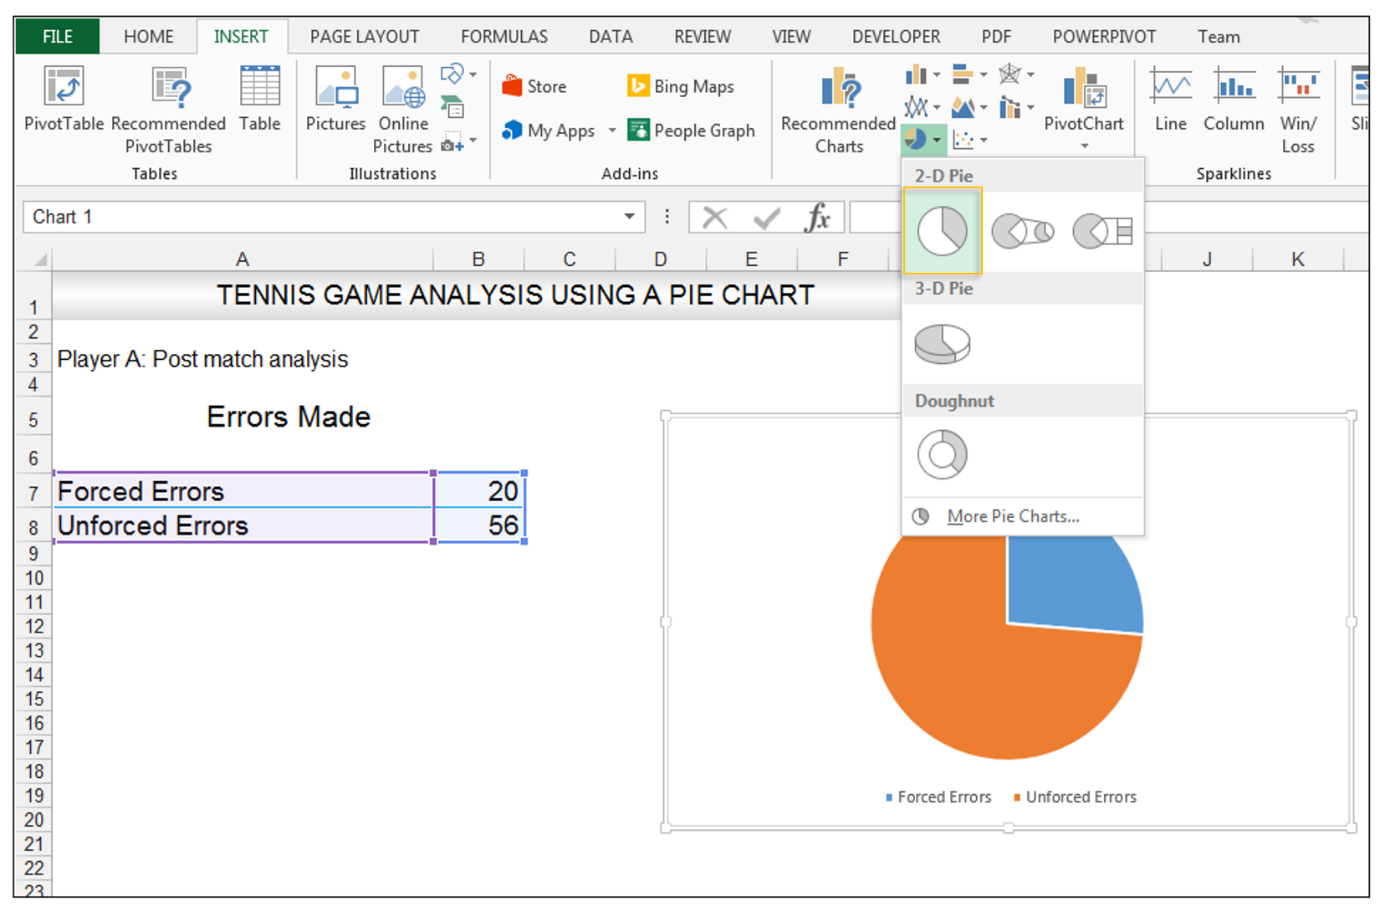 How to make a pie chart in excel add rich data labels to the chart add rich data labels to excel pie chart image 3 nvjuhfo Image collections